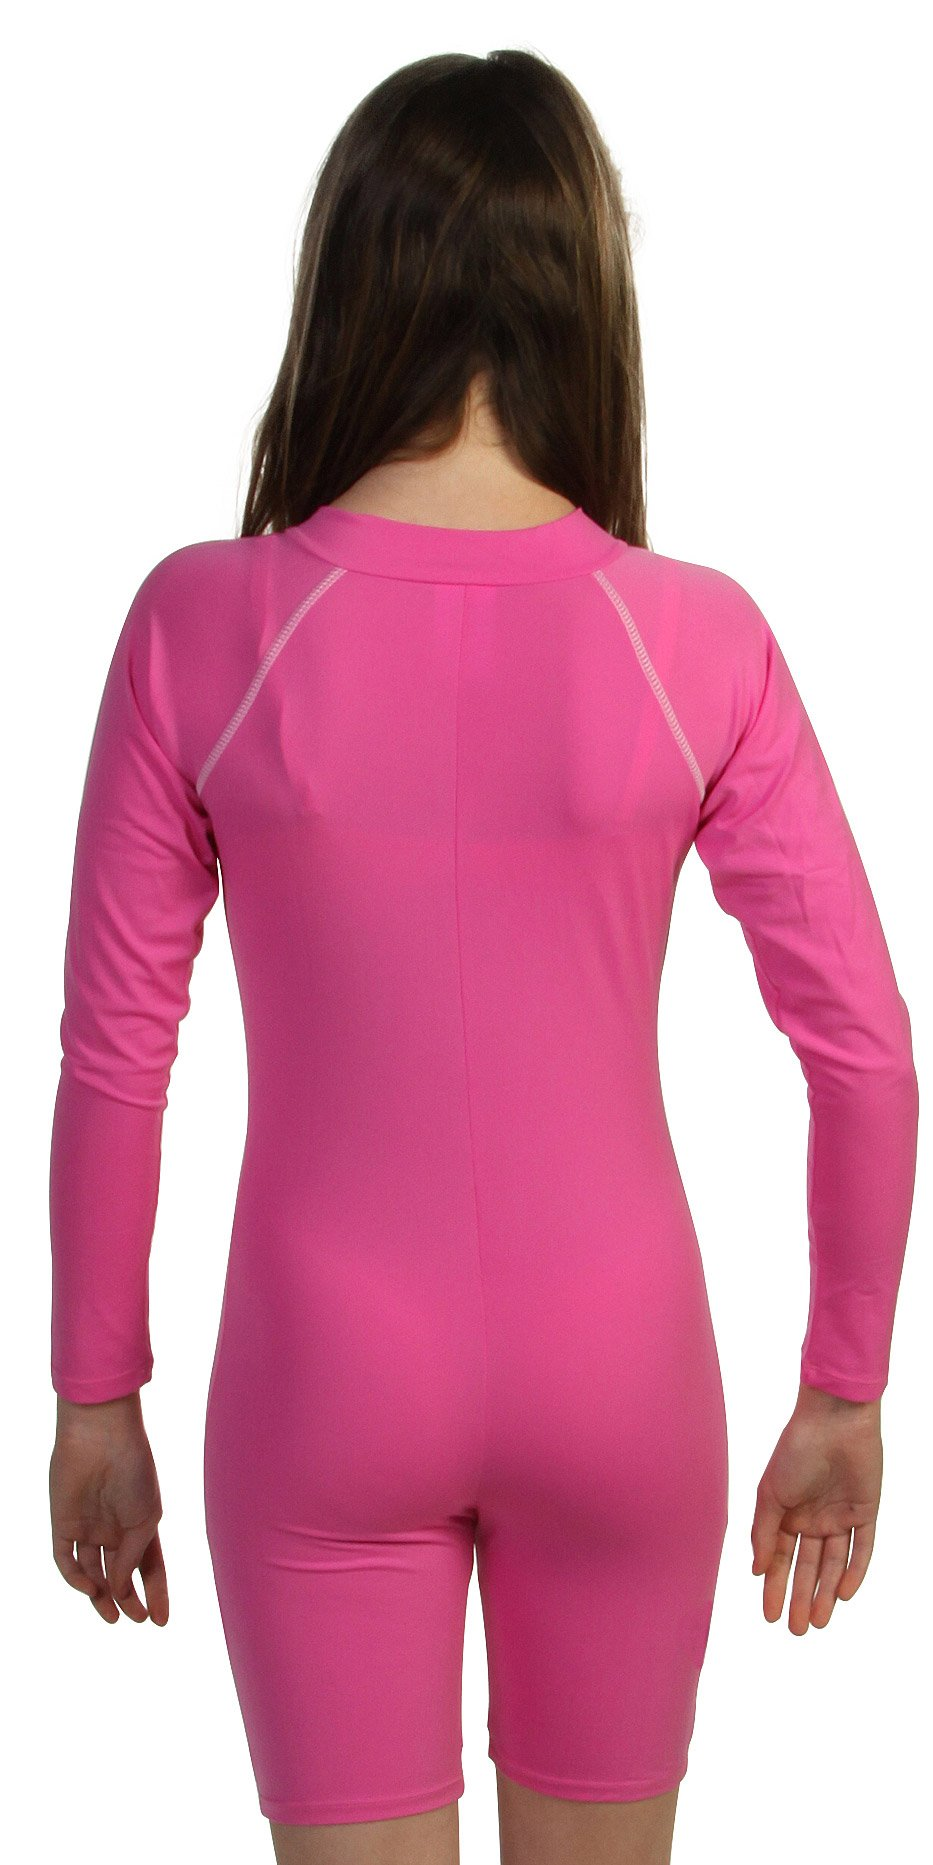 Sun Emporium Girls Pink UV Sun Protective Rash Guard Swim Suit with Long Sleeves - UPF/SPF Protection, pink, 10 by Sun Emporium